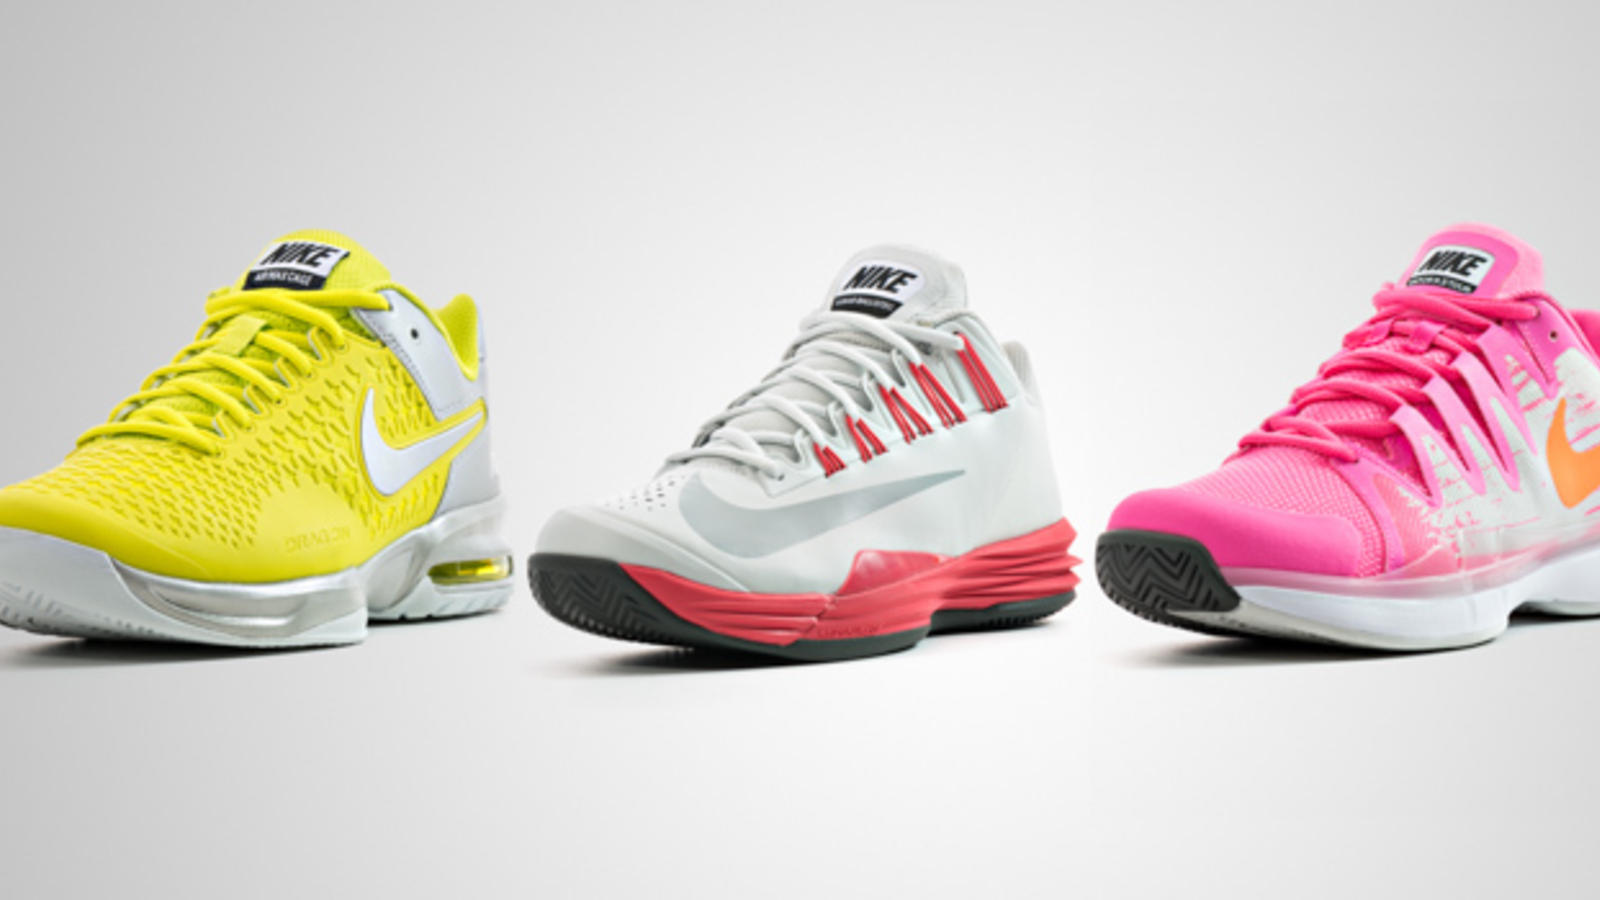 Nike Tennis Footwear - Women